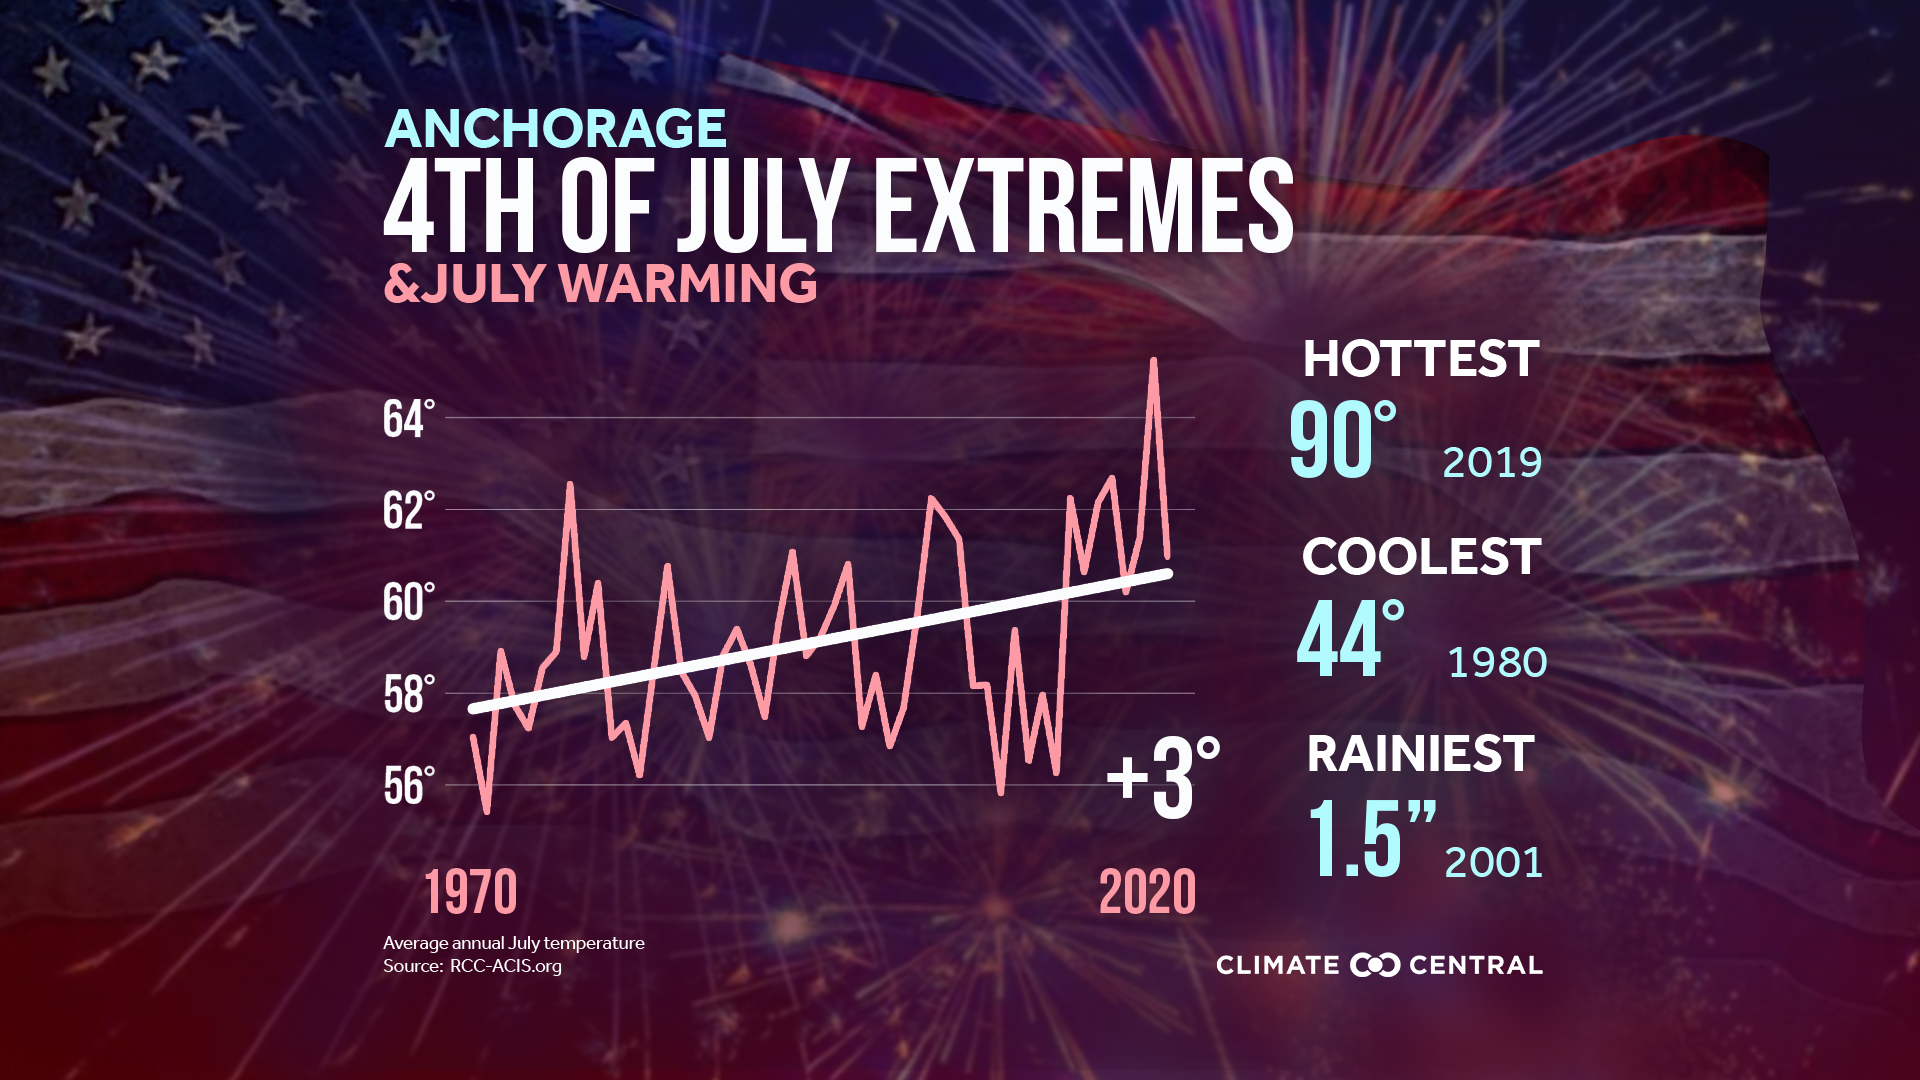 July Warming & Extremes